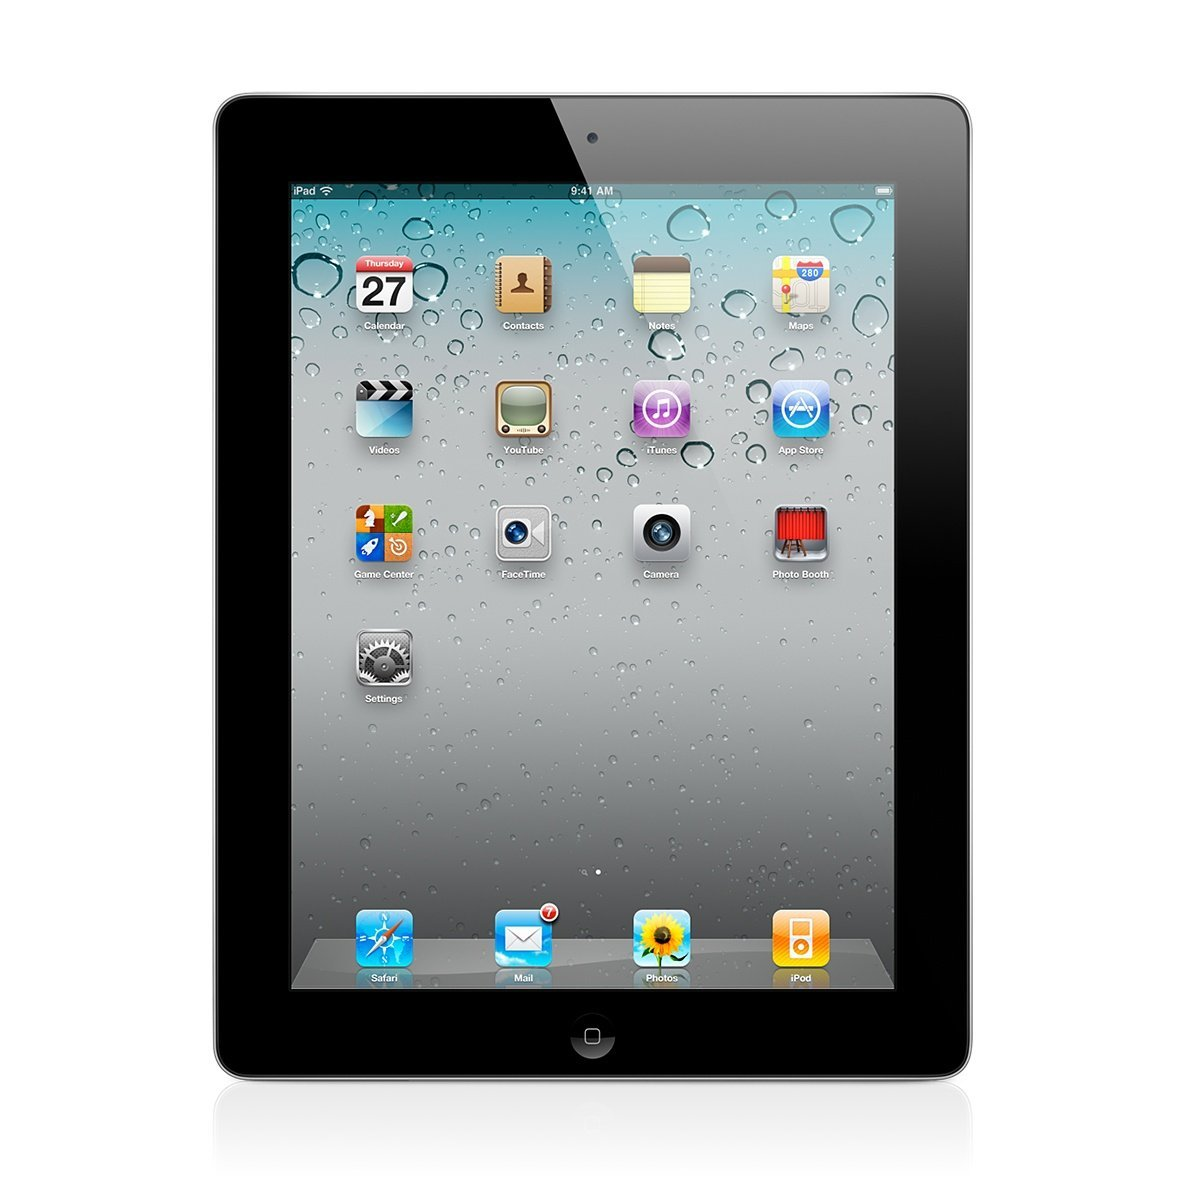 Apple iPad 2 MC773LL A, 16GB WiFi   3G AT amp T Black (Grade C) abe9fc04100a